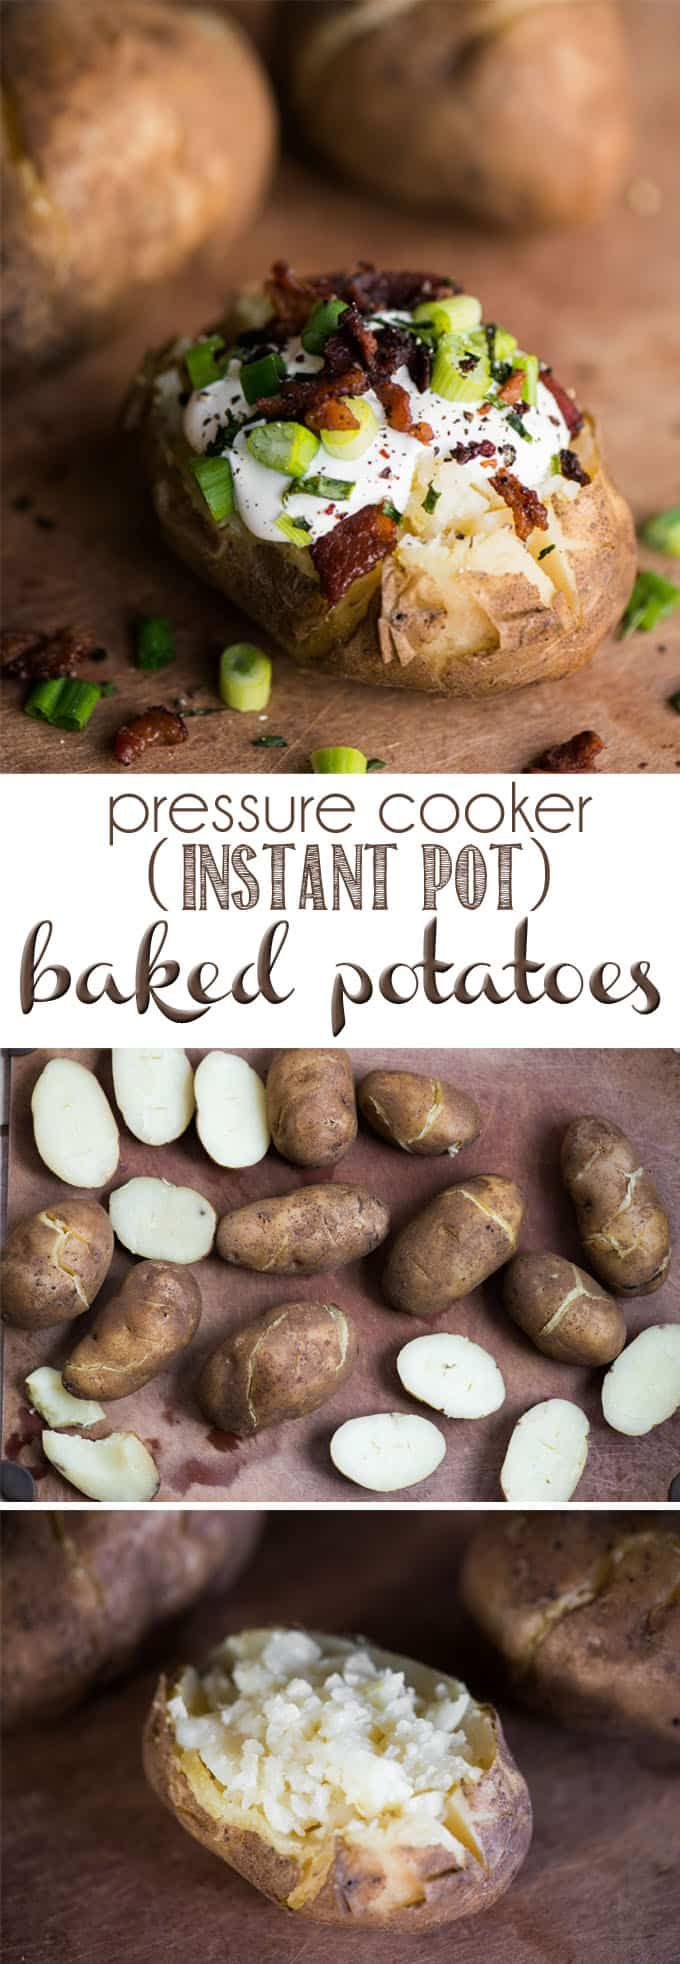 Pressure Cooker (Instant Pot) Baked Potatoes are far superior to any baked potato cooked in the oven or microwave. In just minutes, you'll have potatoes with a soft, moist creamy center and a dry, thin skin on the outside. You can even give them a rub in olive oil and salt and crisp them up in the oven if you want. #pressurecooker #instantpot #bakedpotatoes #potatoes